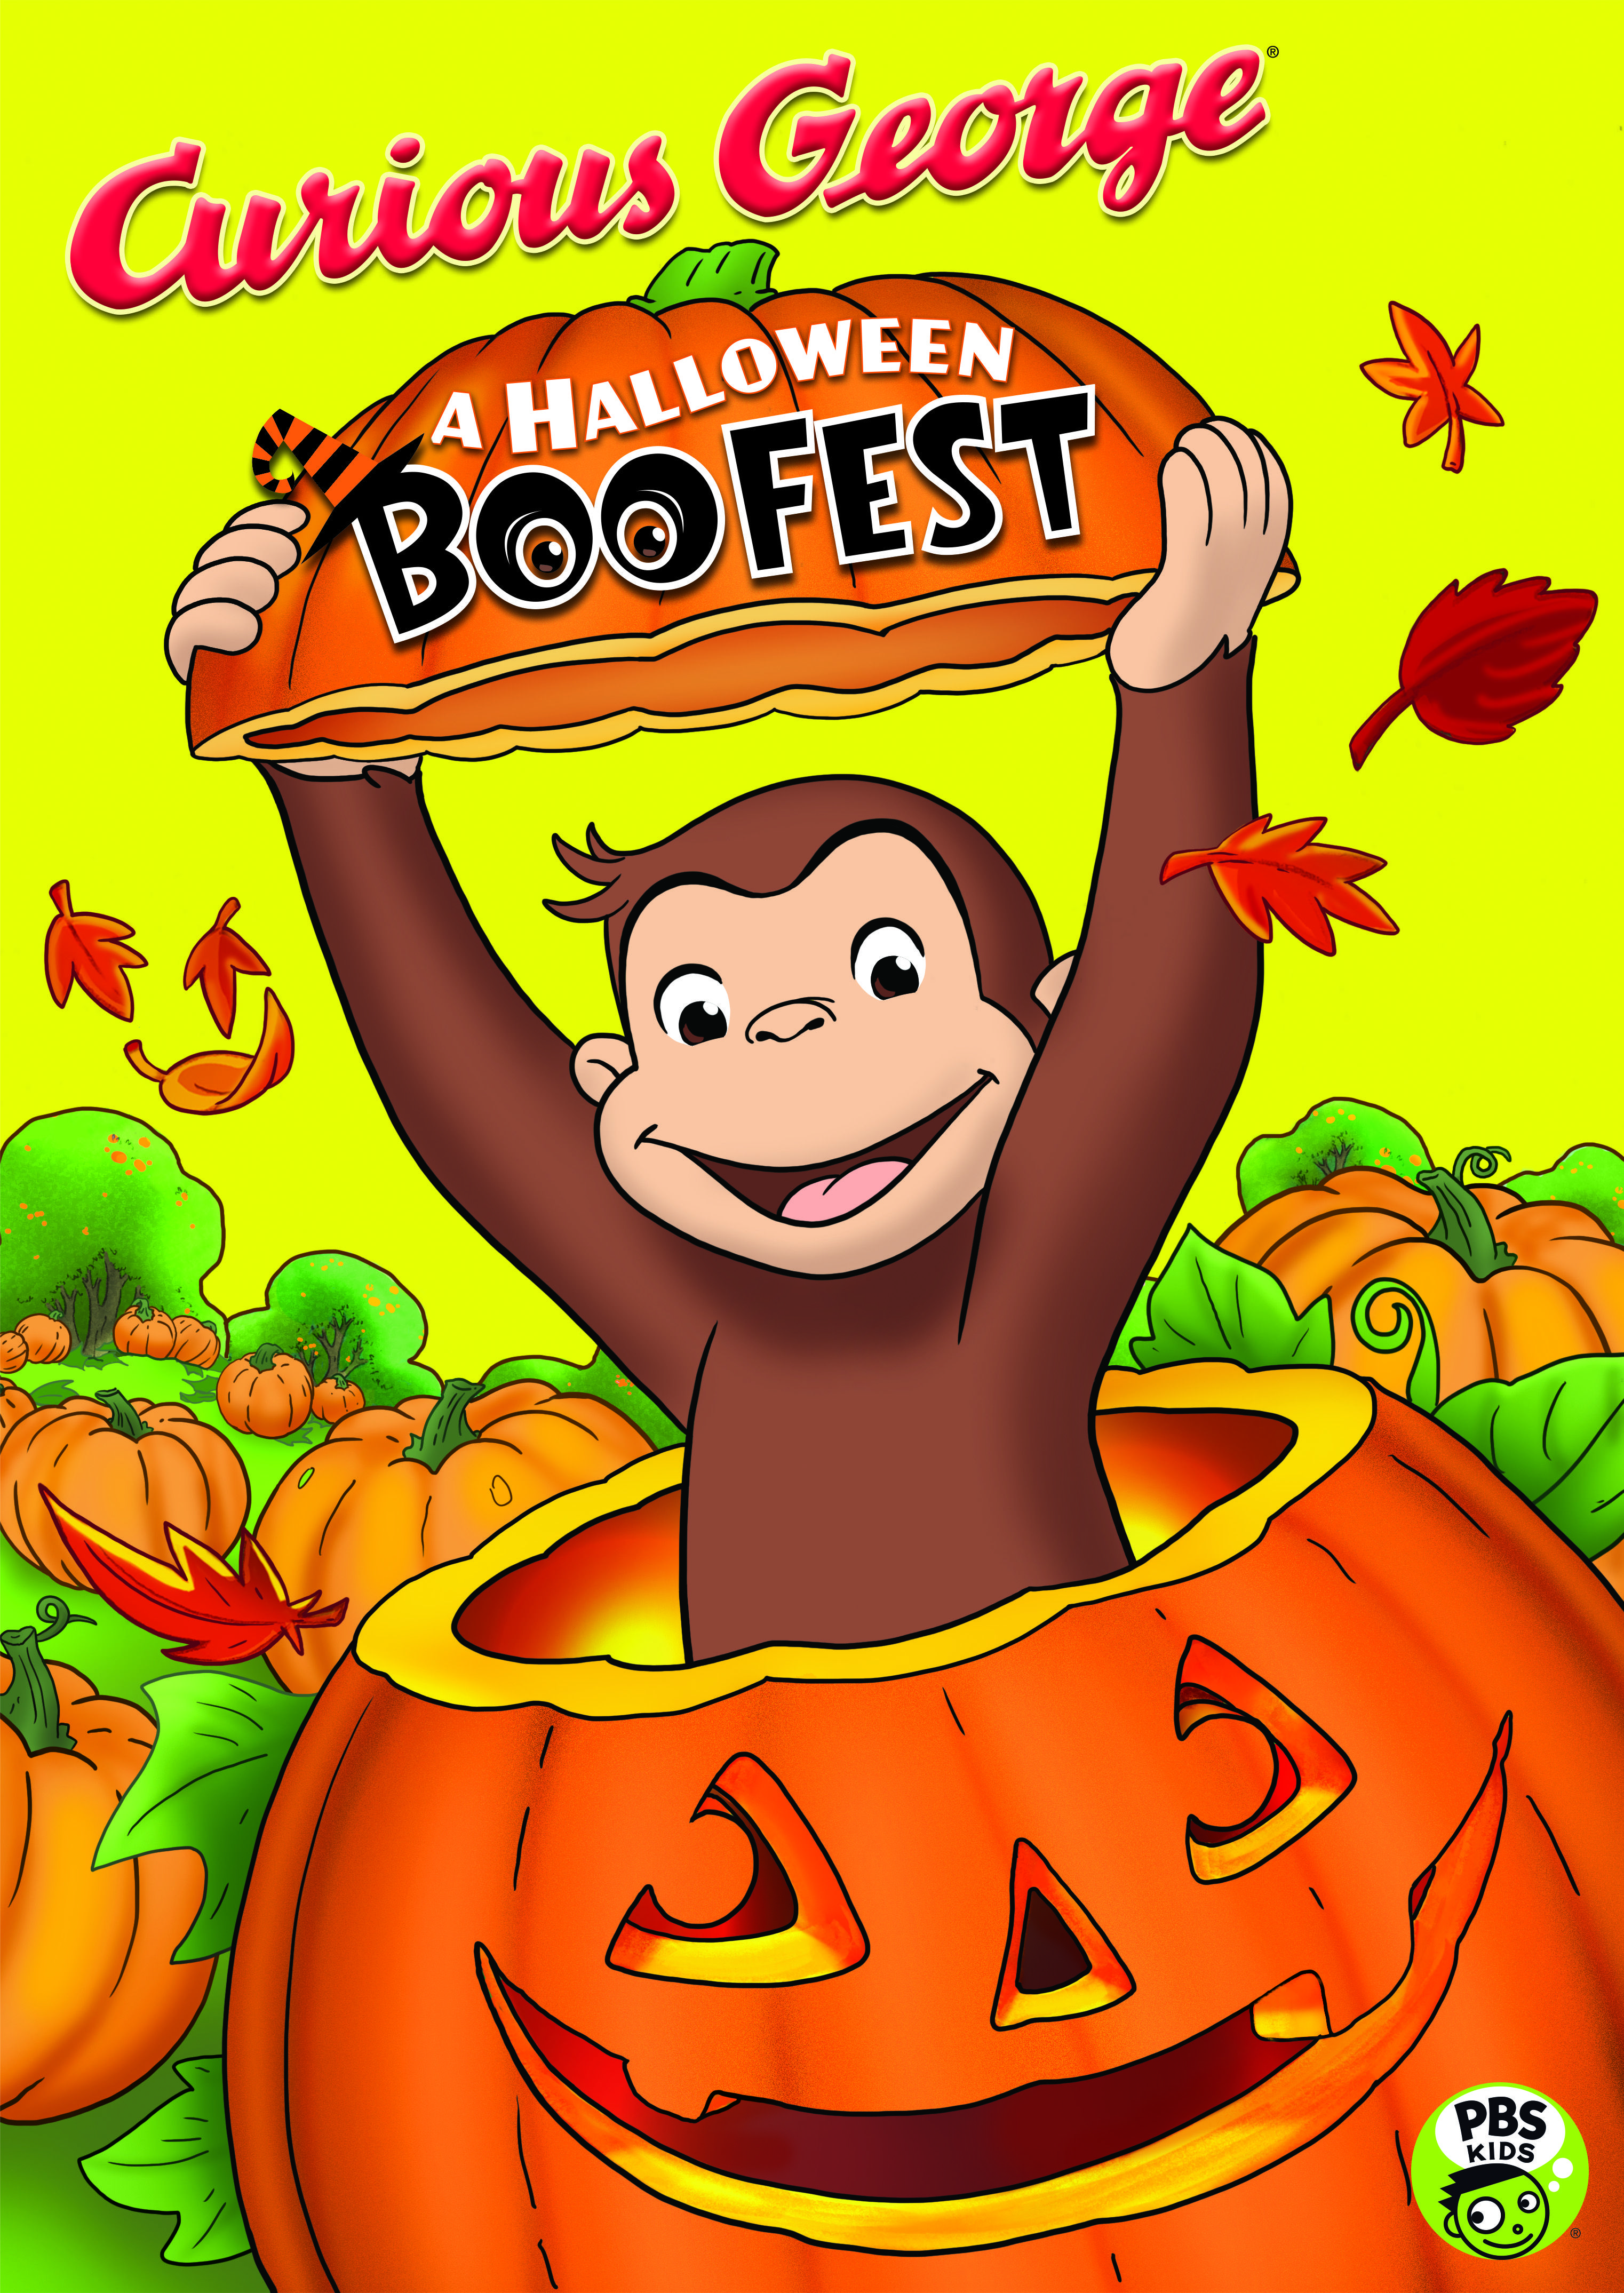 Curious George is excited about Halloween in this boofest | Kid ...